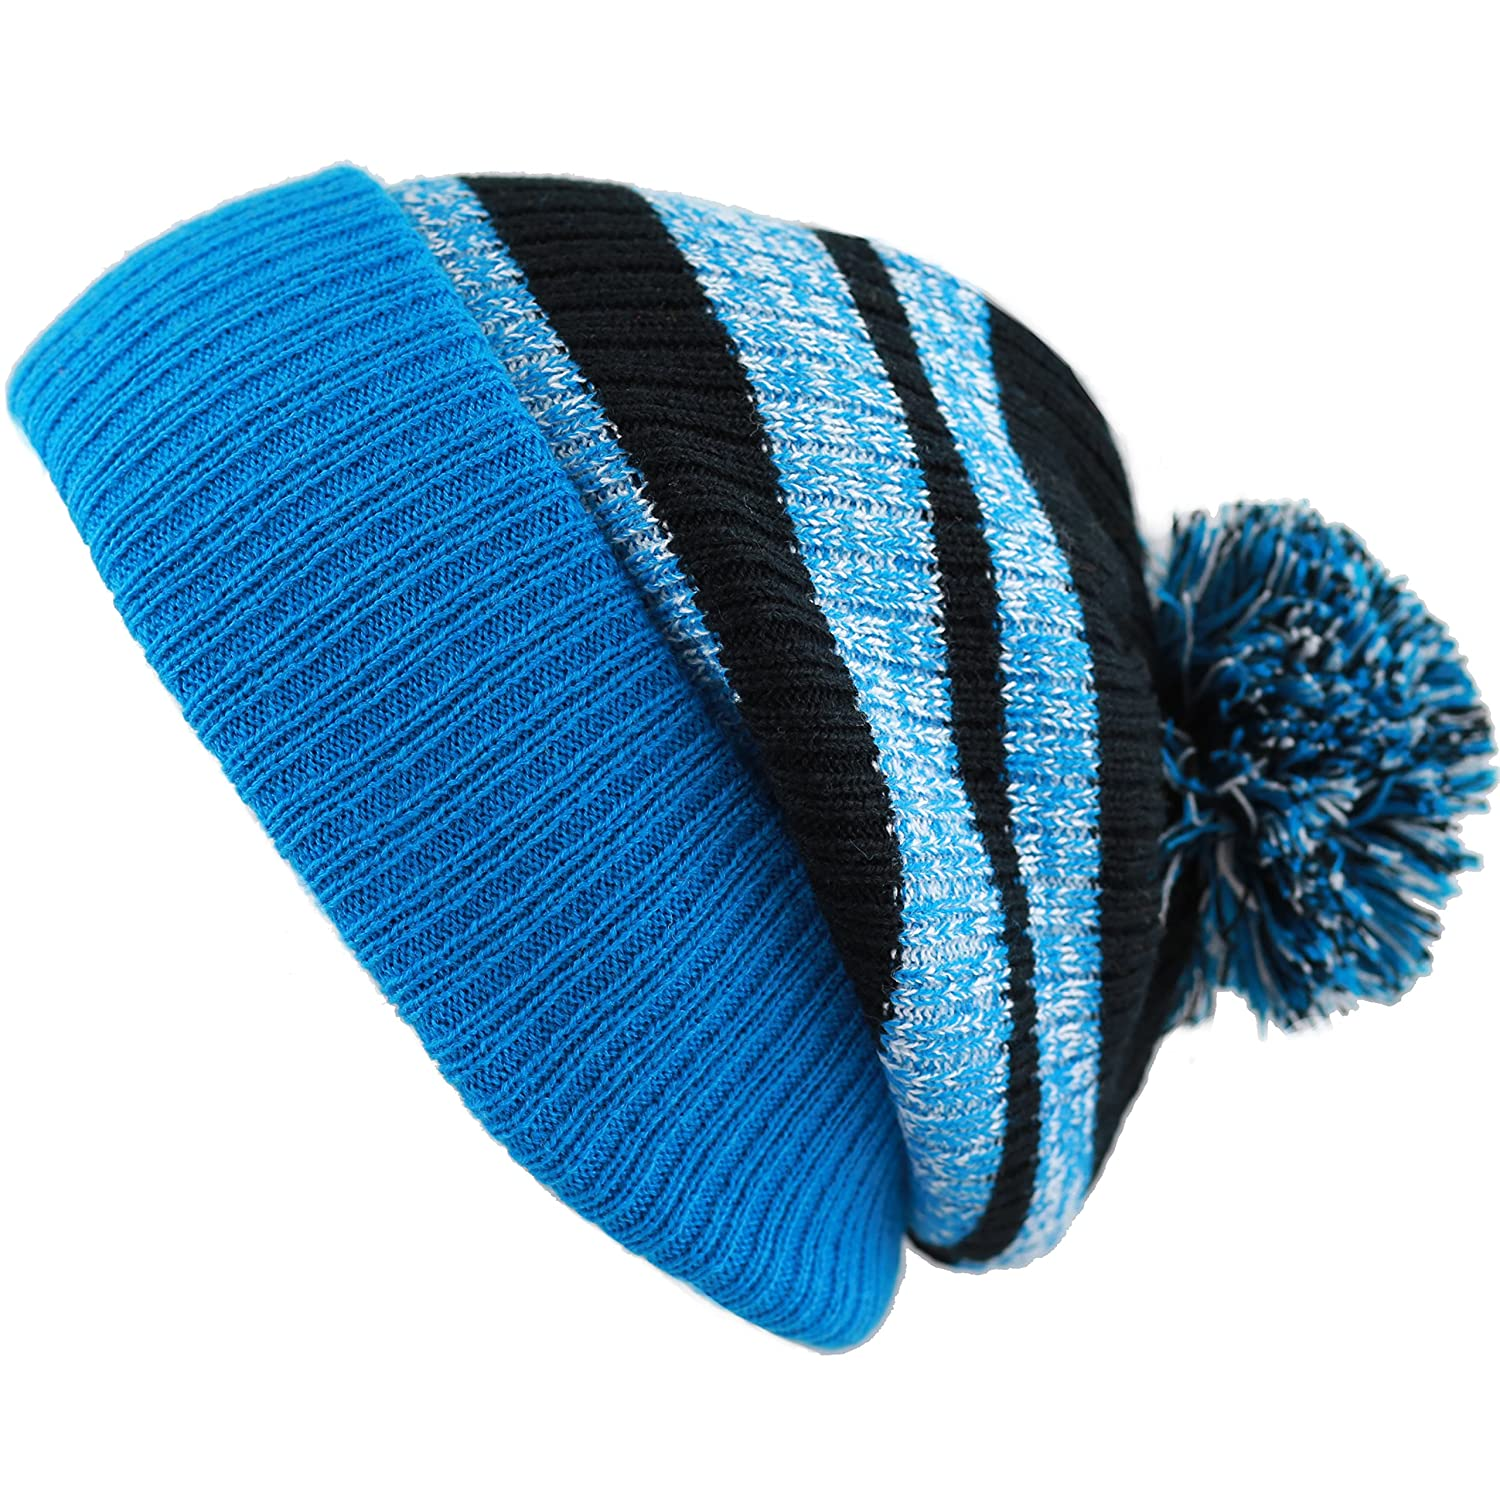 5a73105e THE HAT DEPOT Striped Cuffed Knit Beanie Winter Hat with Pom Hat  (Black-Royal) at Amazon Men's Clothing store: